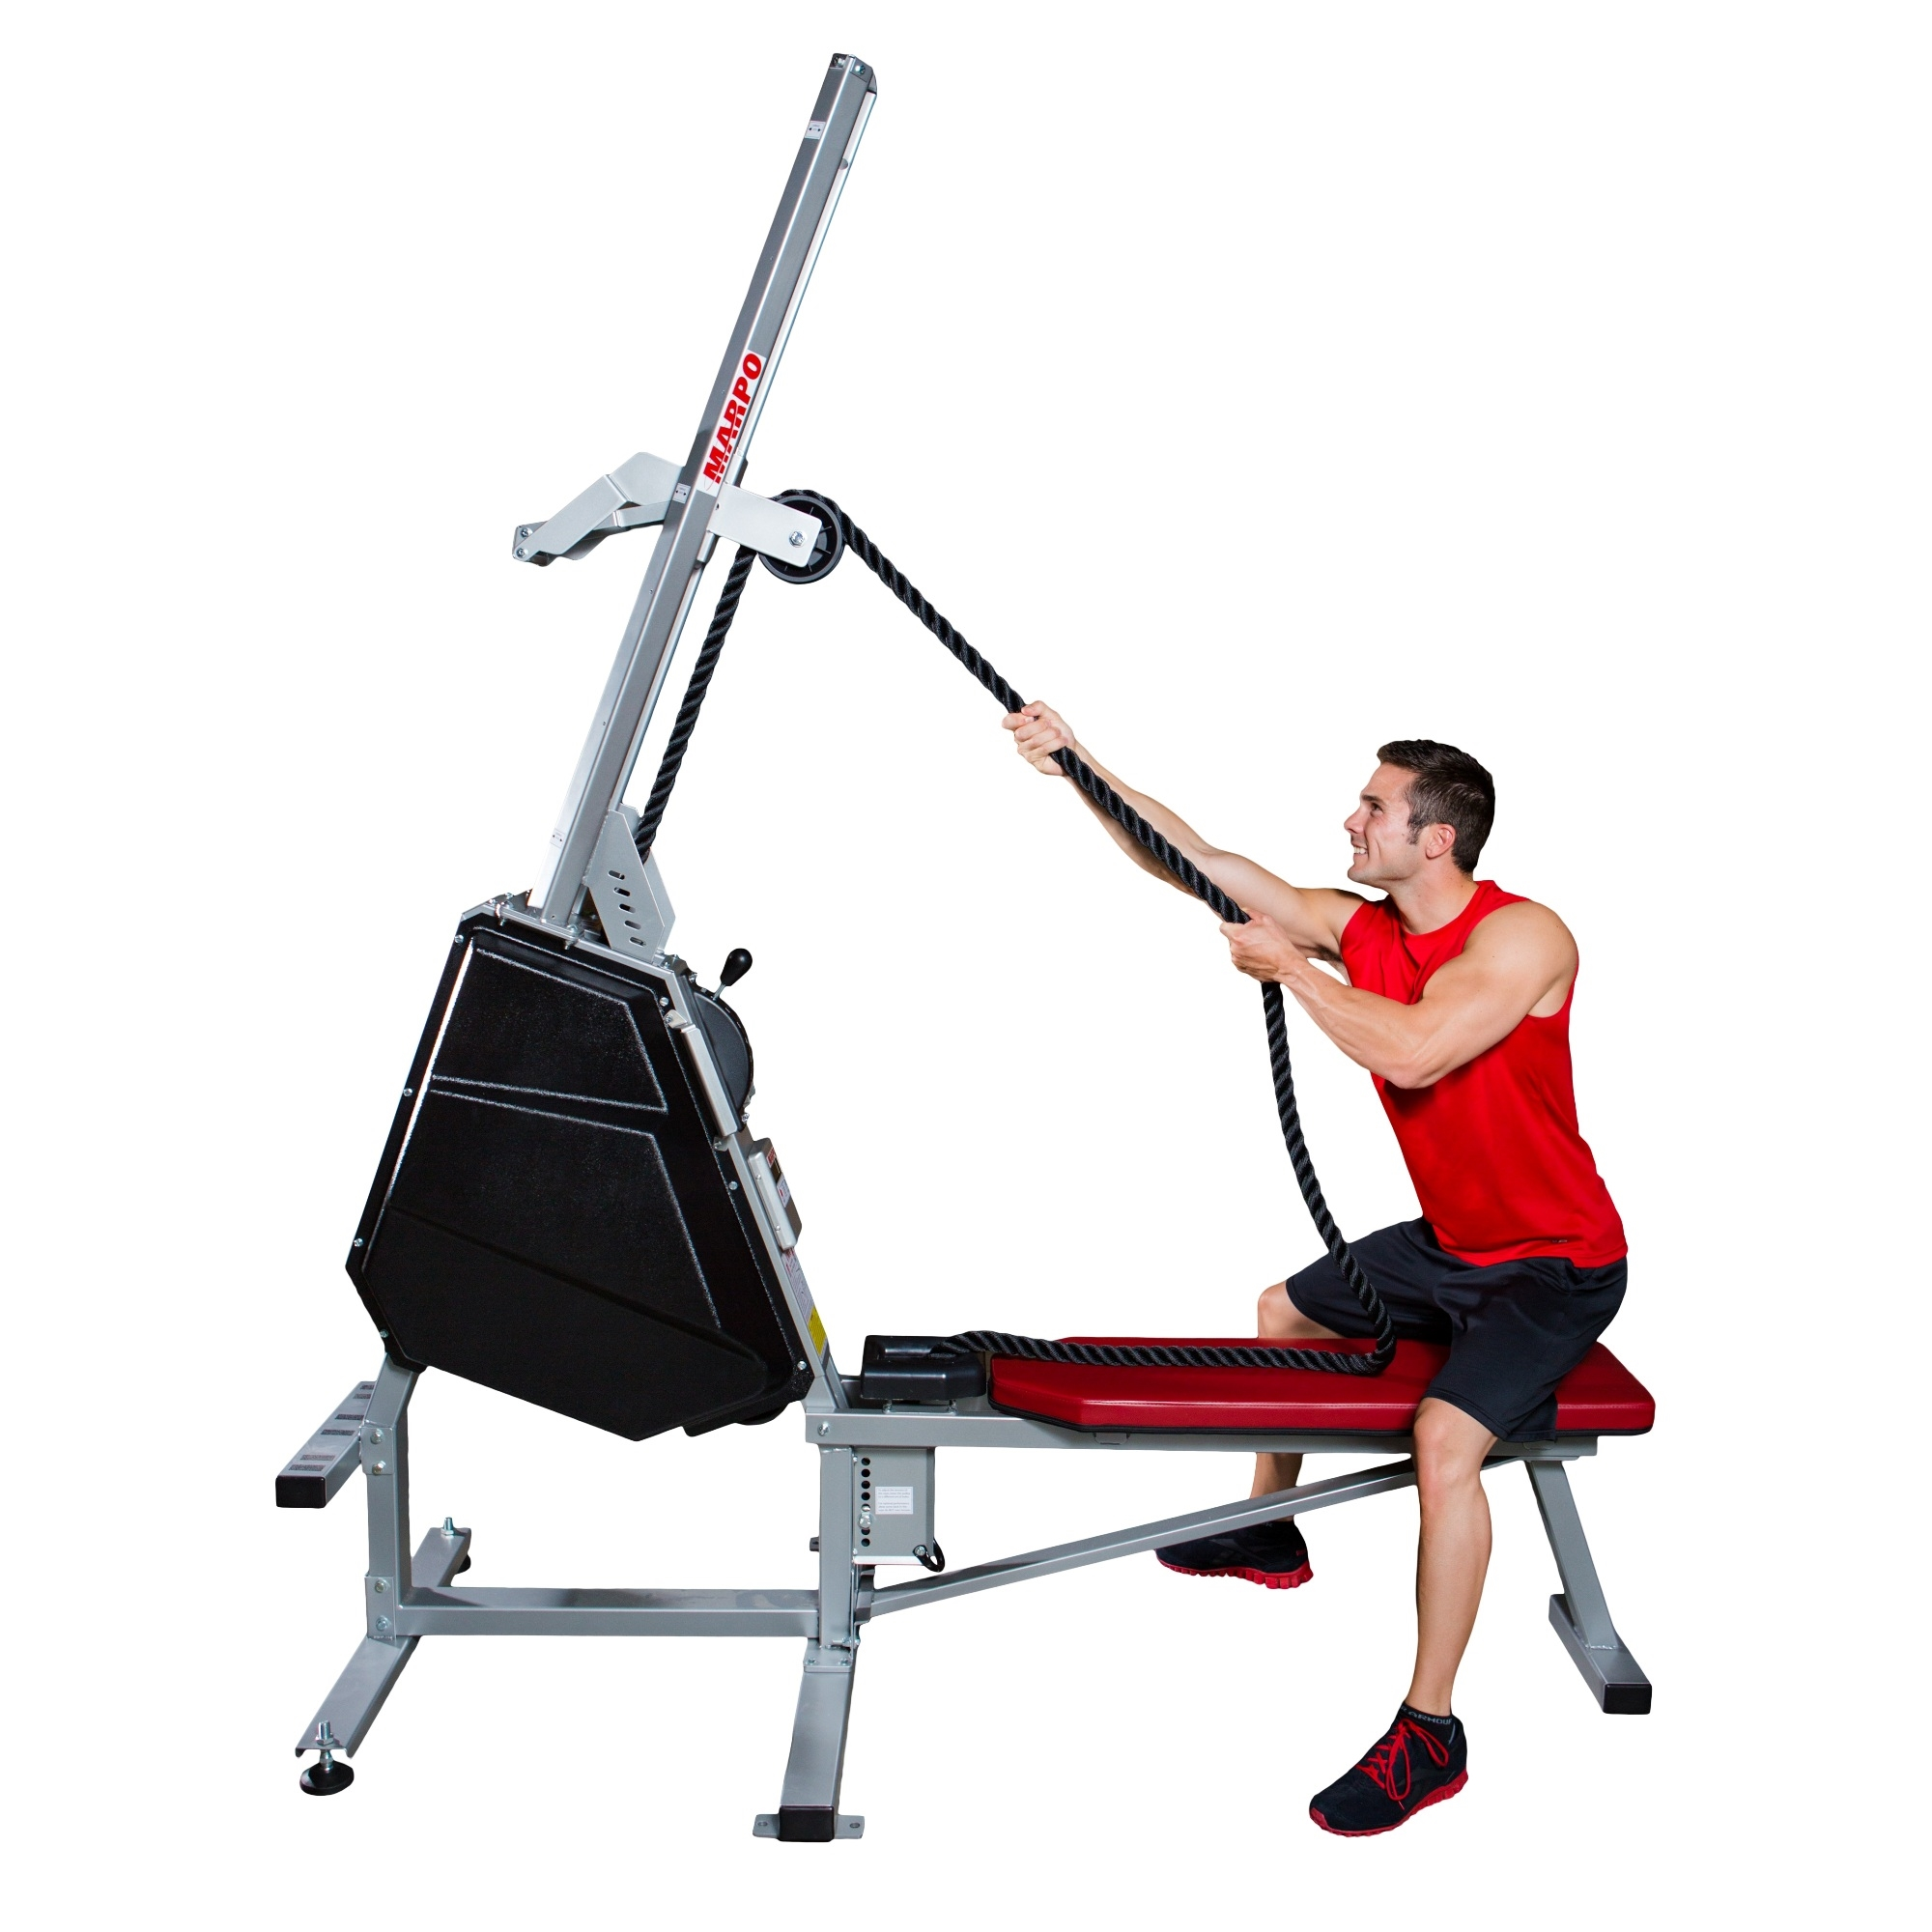 VMX Multi Mode Rope Trainer